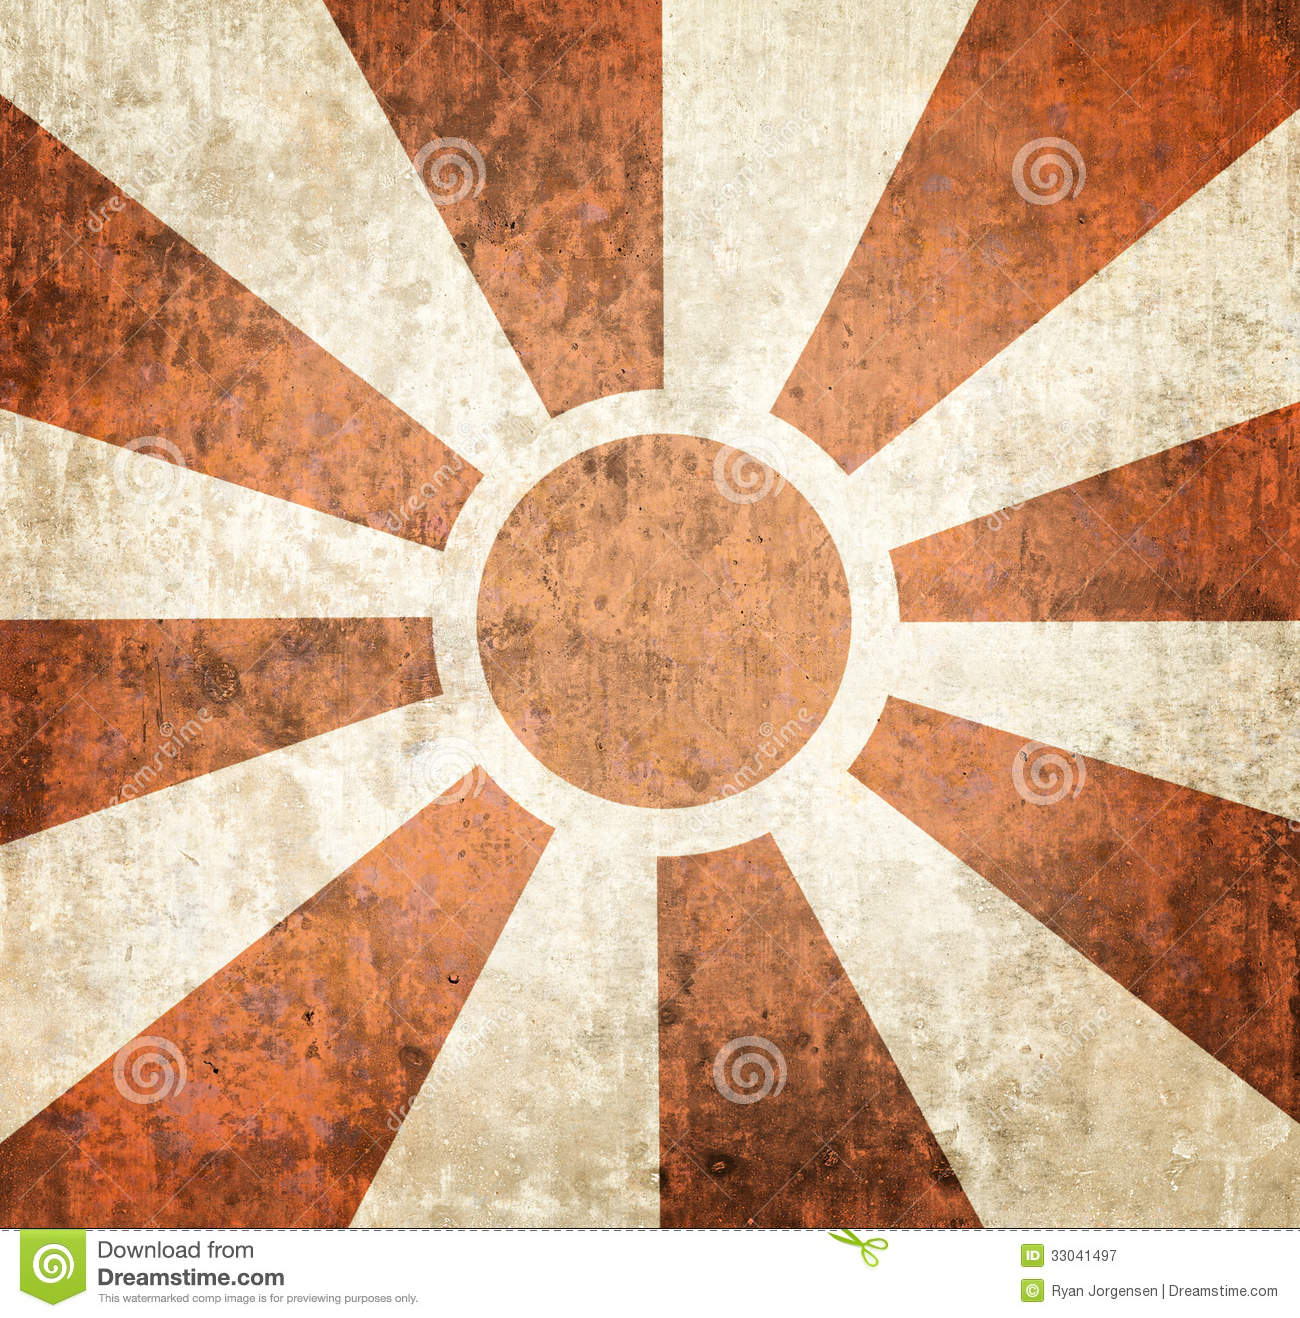 Poster design download - Background Cement Design Grunge Orange Poster